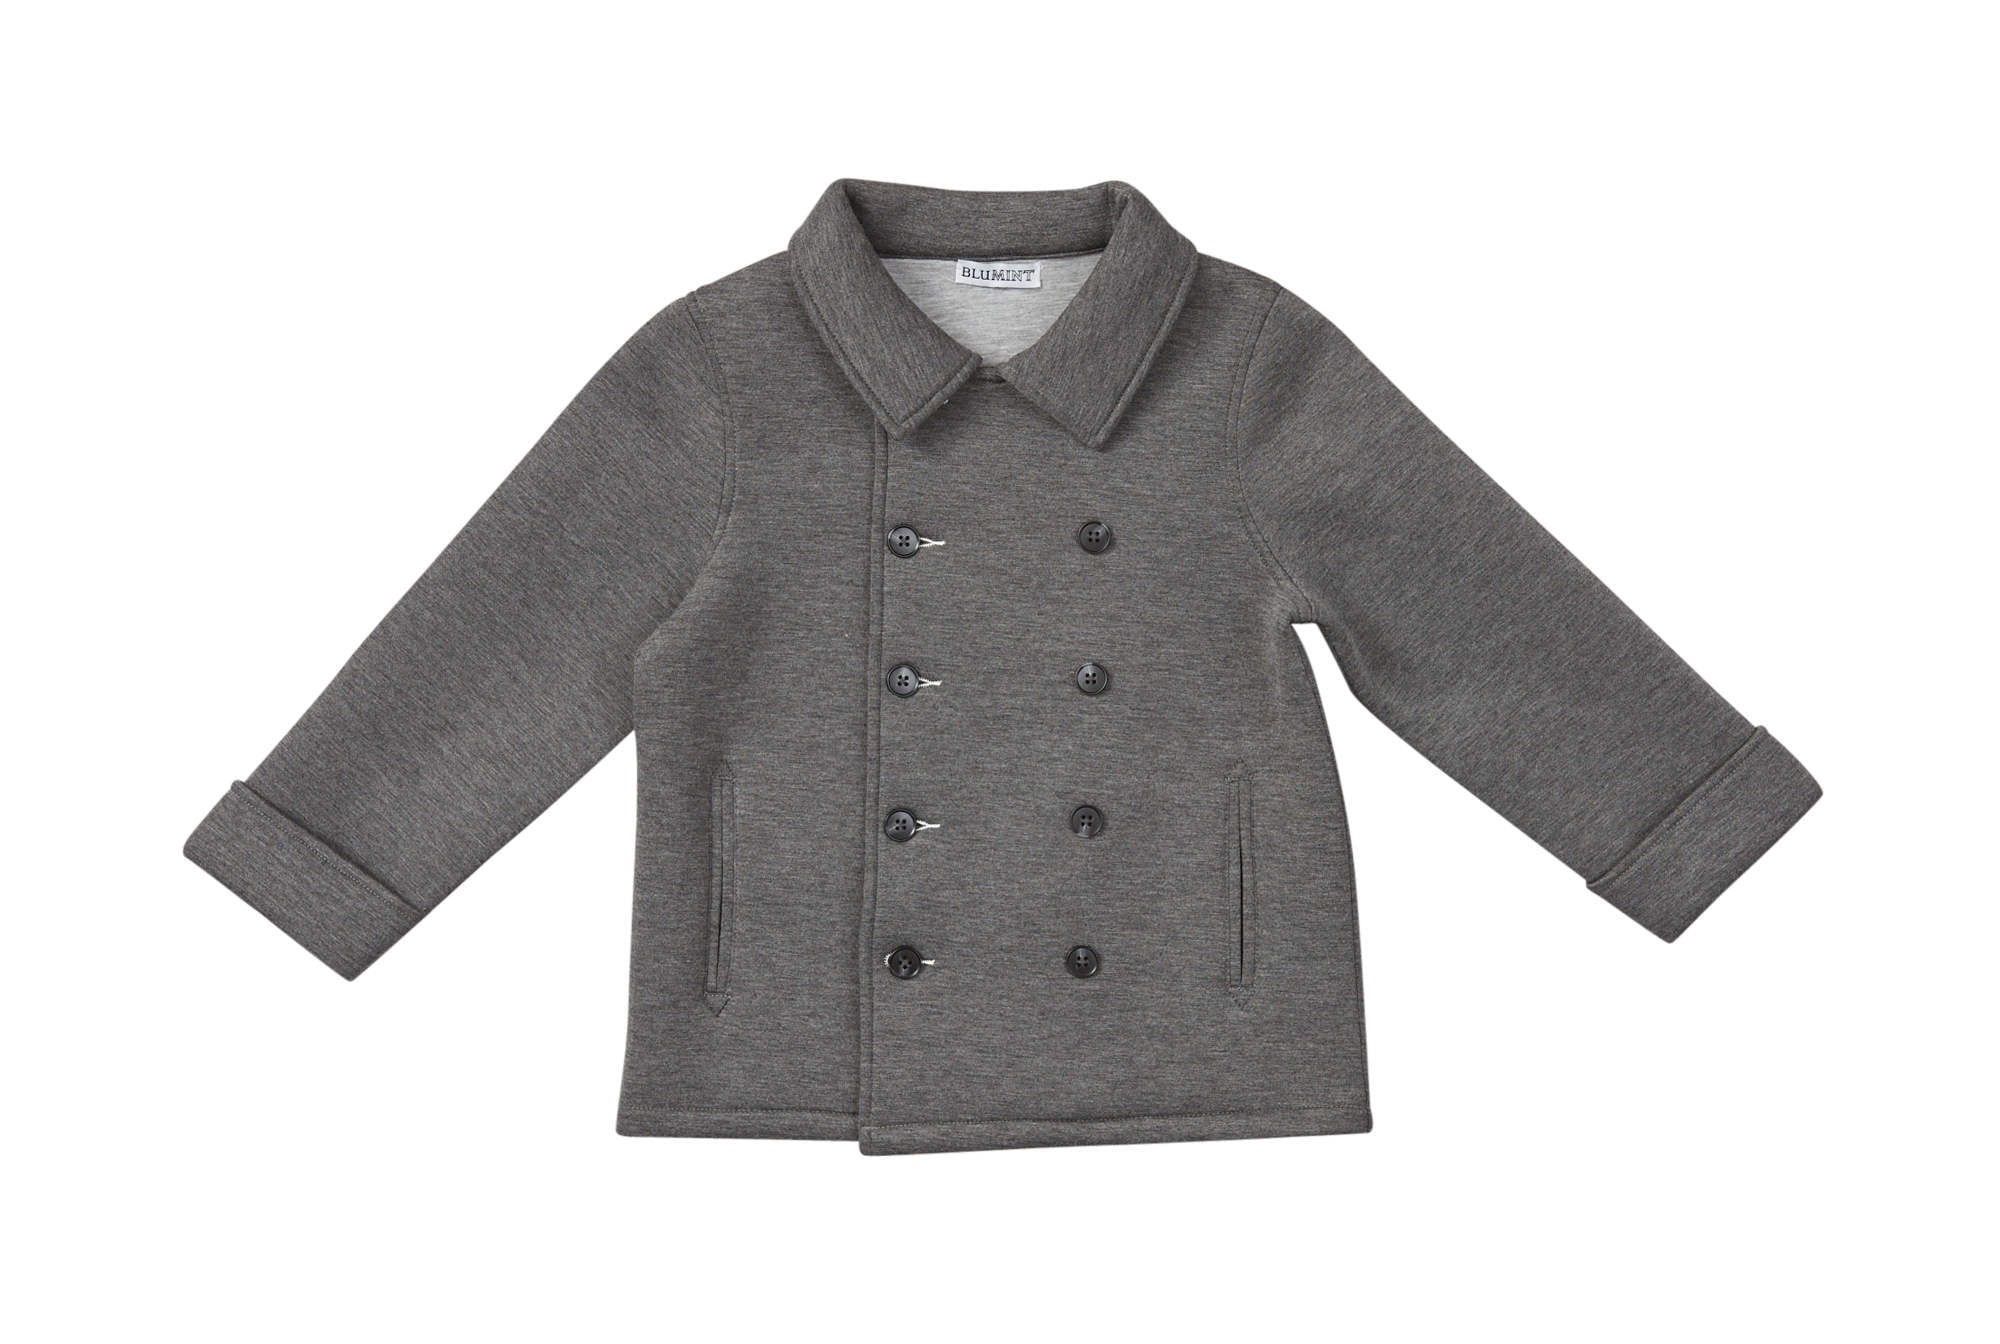 Blumint Grey Double Breasted Jacket